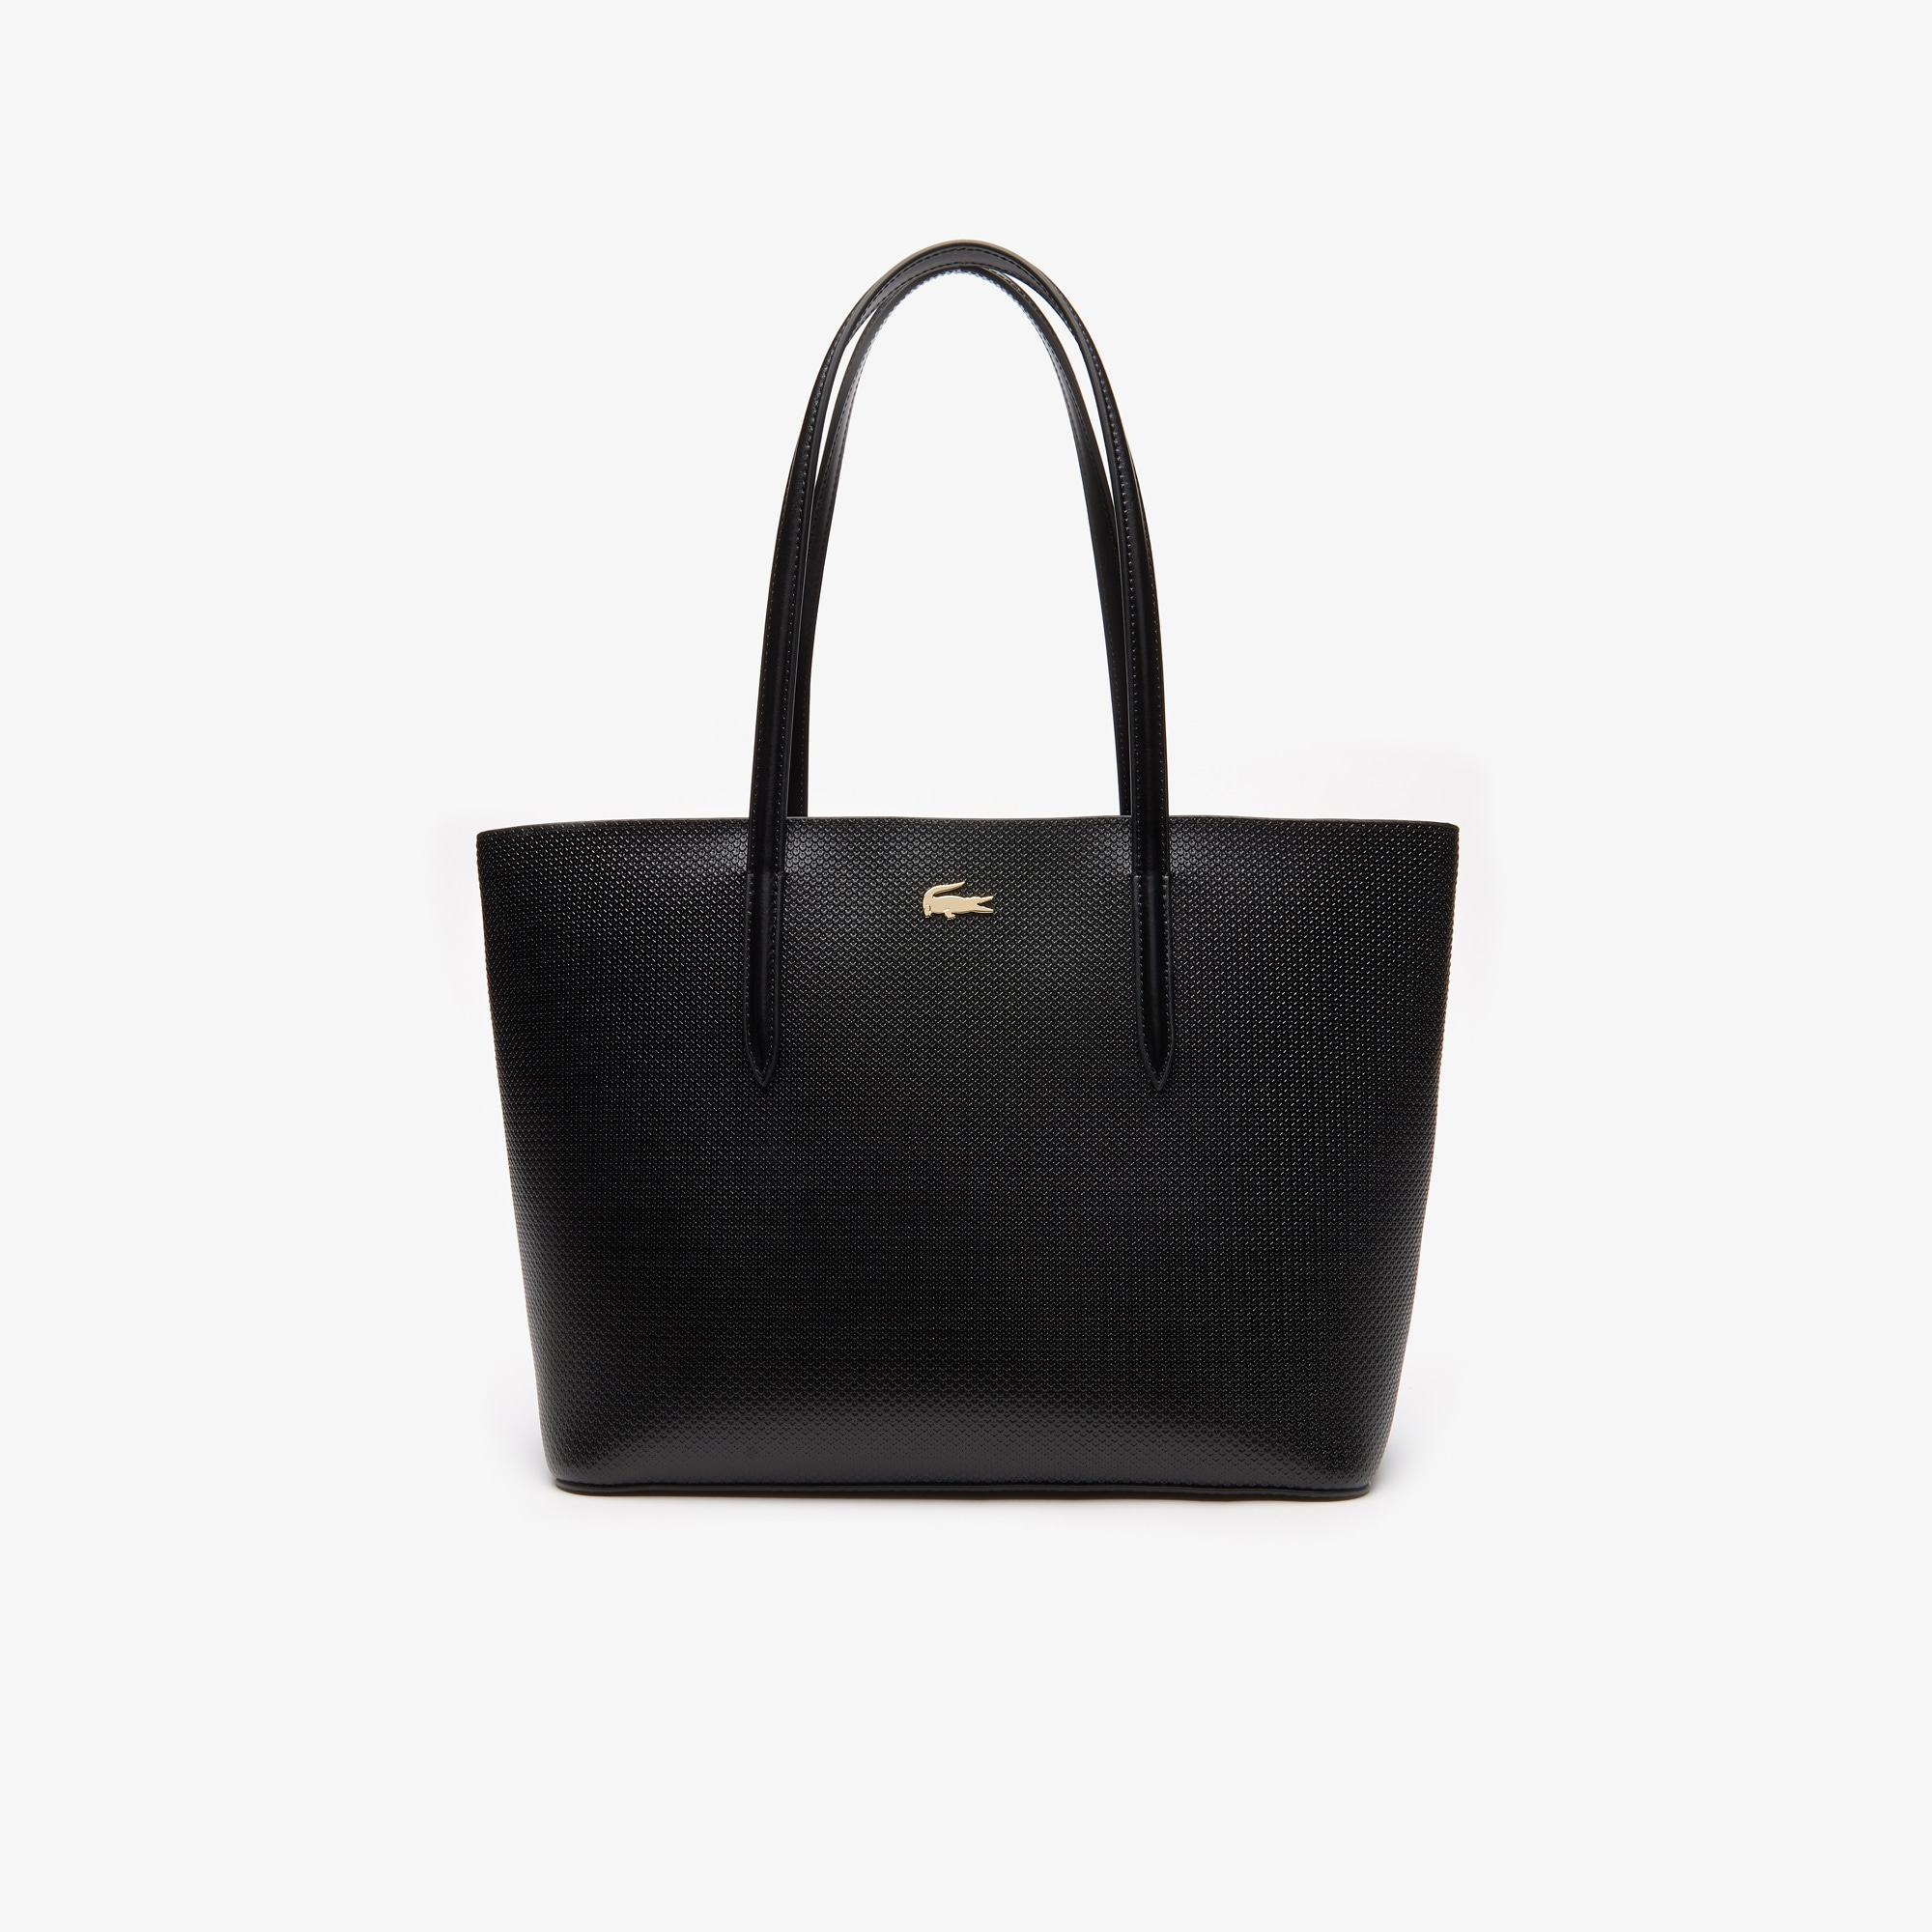 Lacoste Womens Chantaco Leather Tote Bag